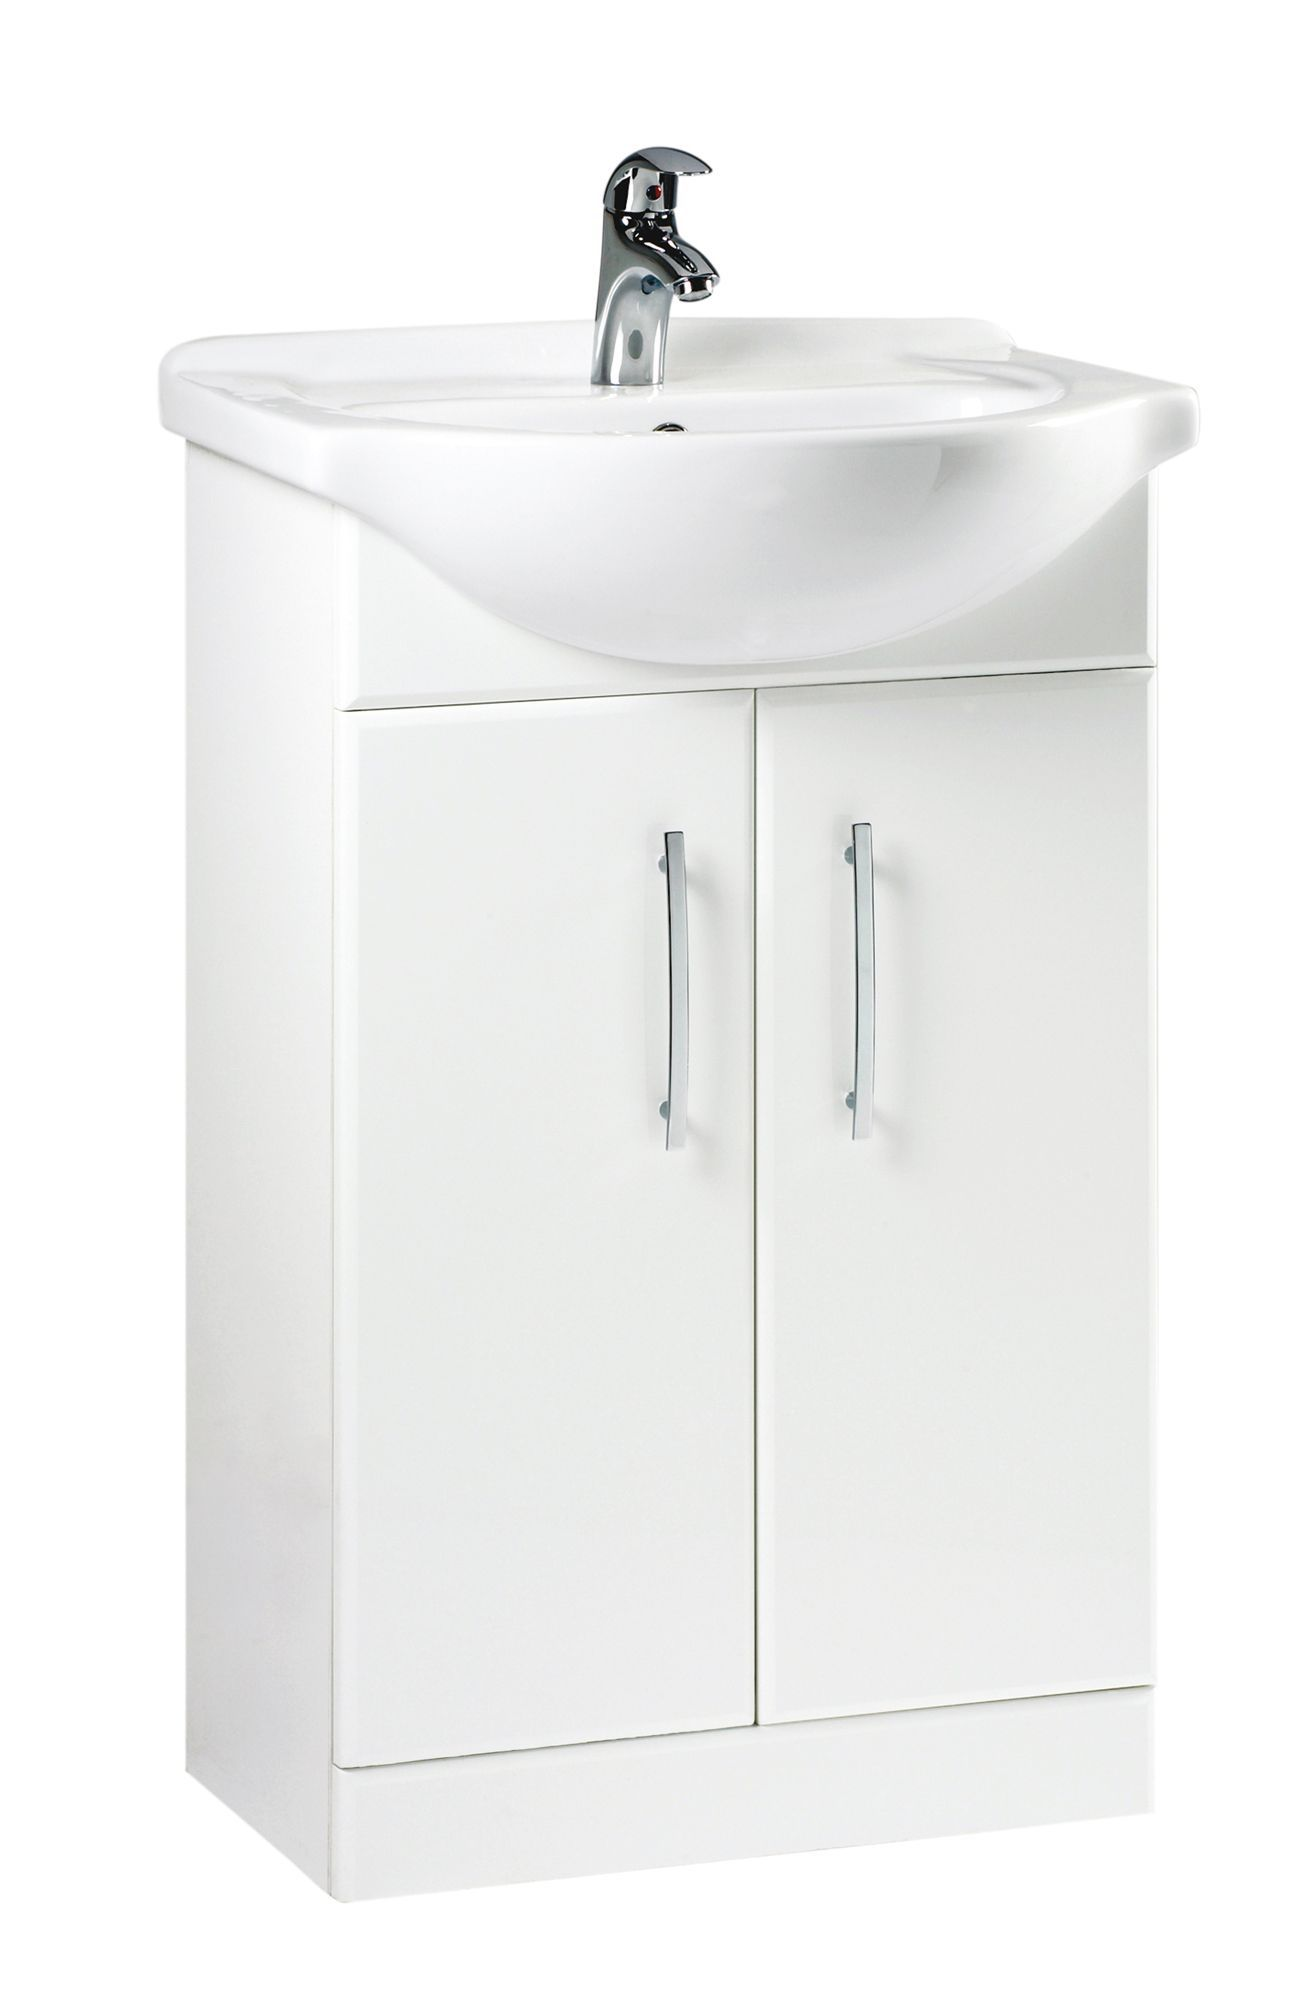 BQ White Vanity Unit Basin Departments DIY At BQ - Cheap bathroom vanity units